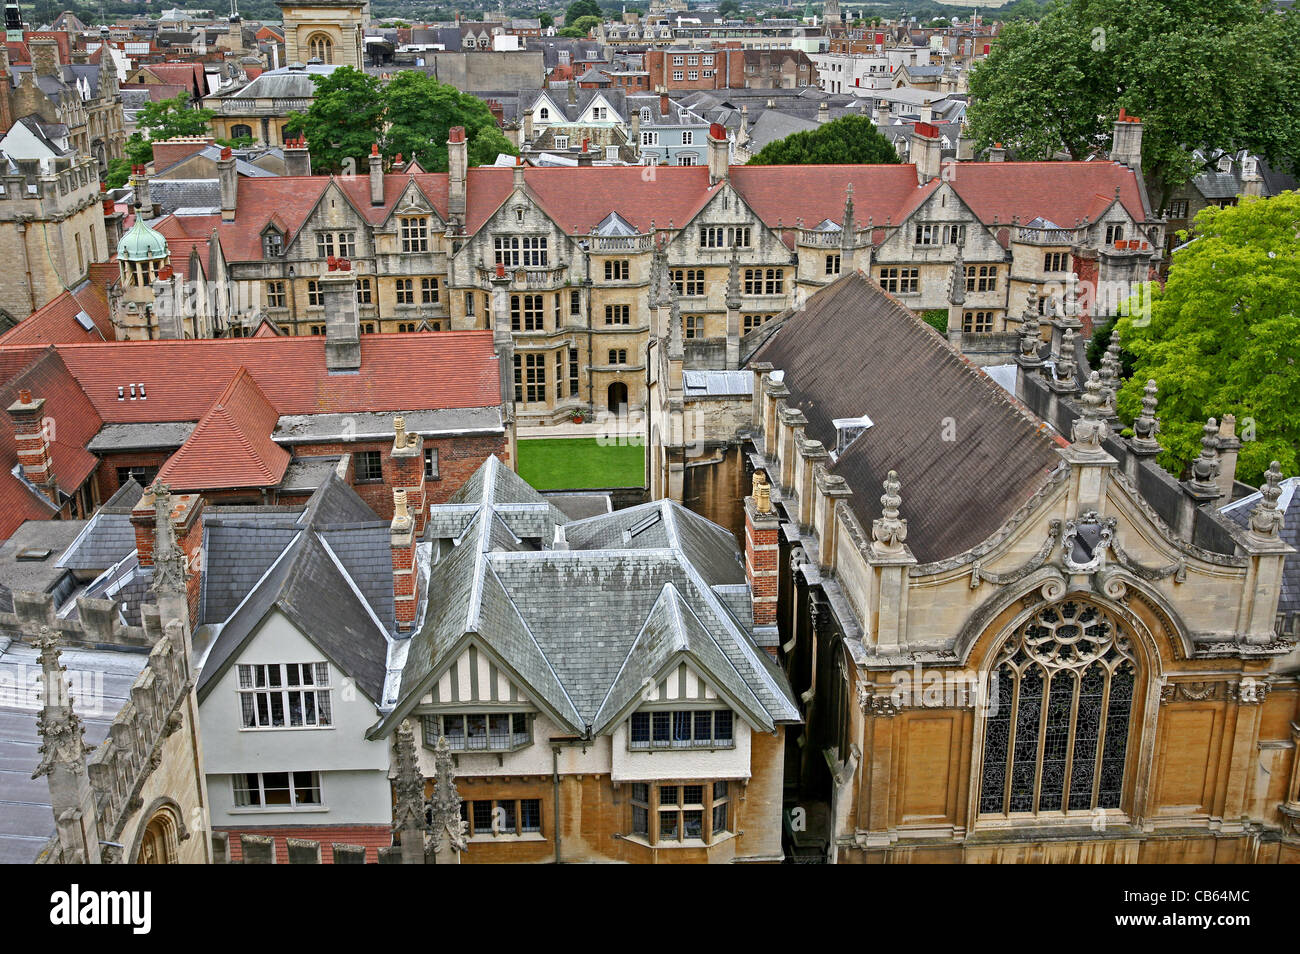 Oxford University Brasenose College viewed from above - Stock Image